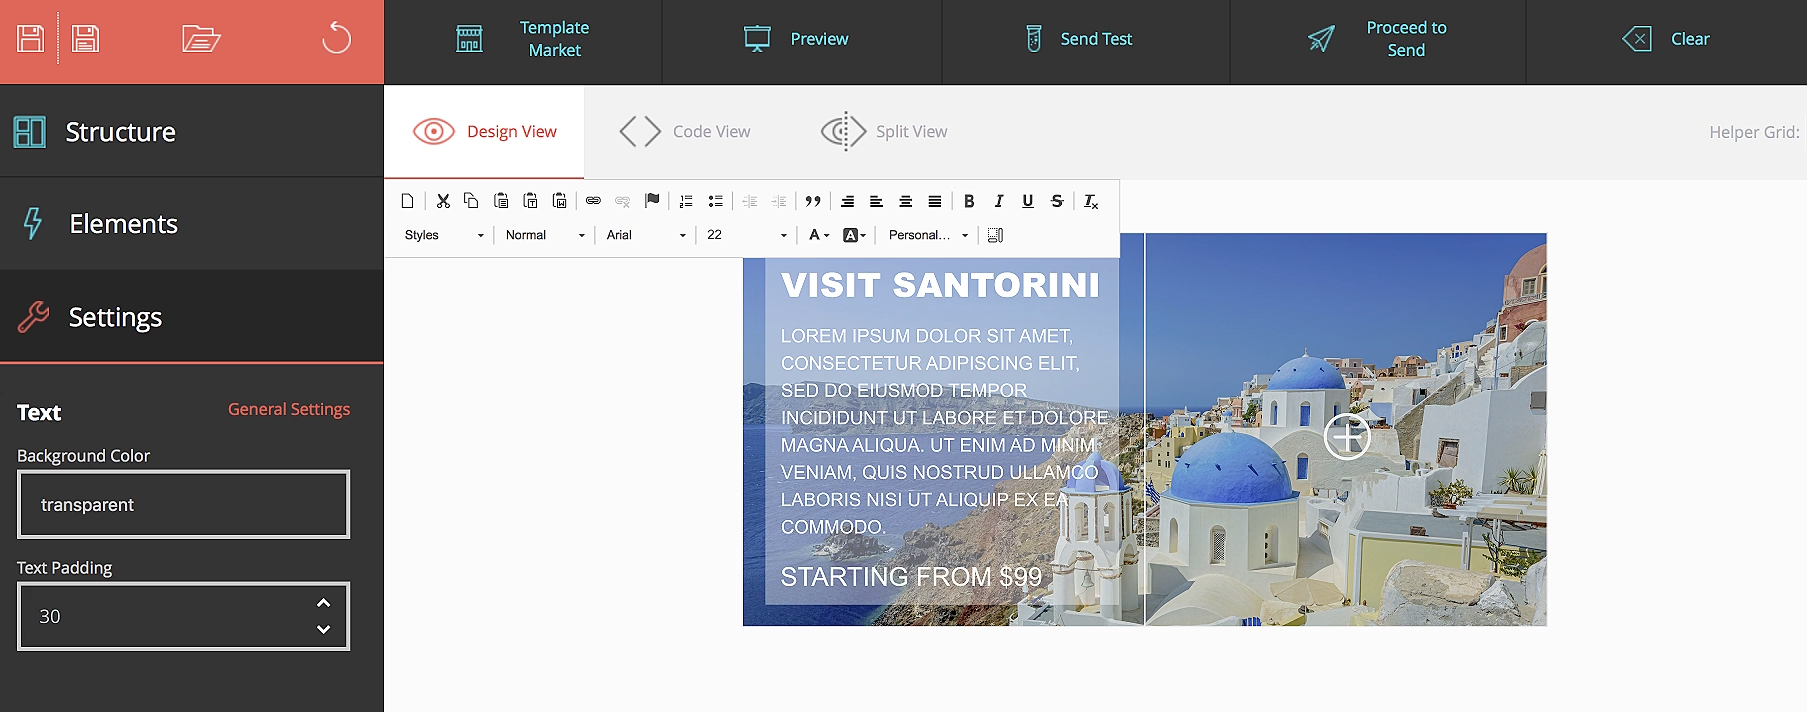 Users can edit text and images in a design view, code view, or split view